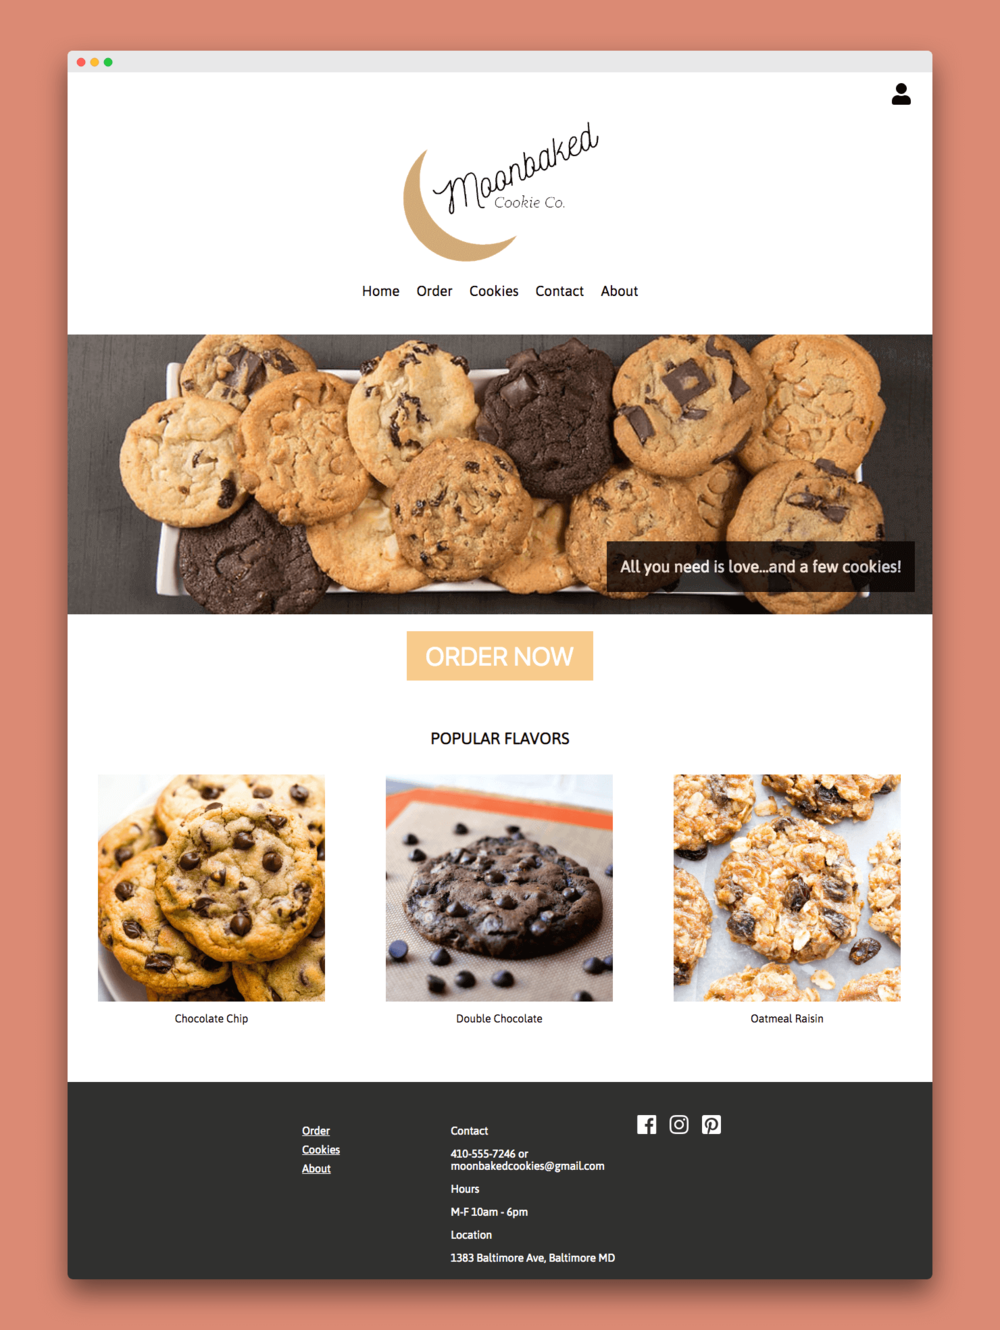 Moonbaked Cookie Co  Website Design — Shannon Cates